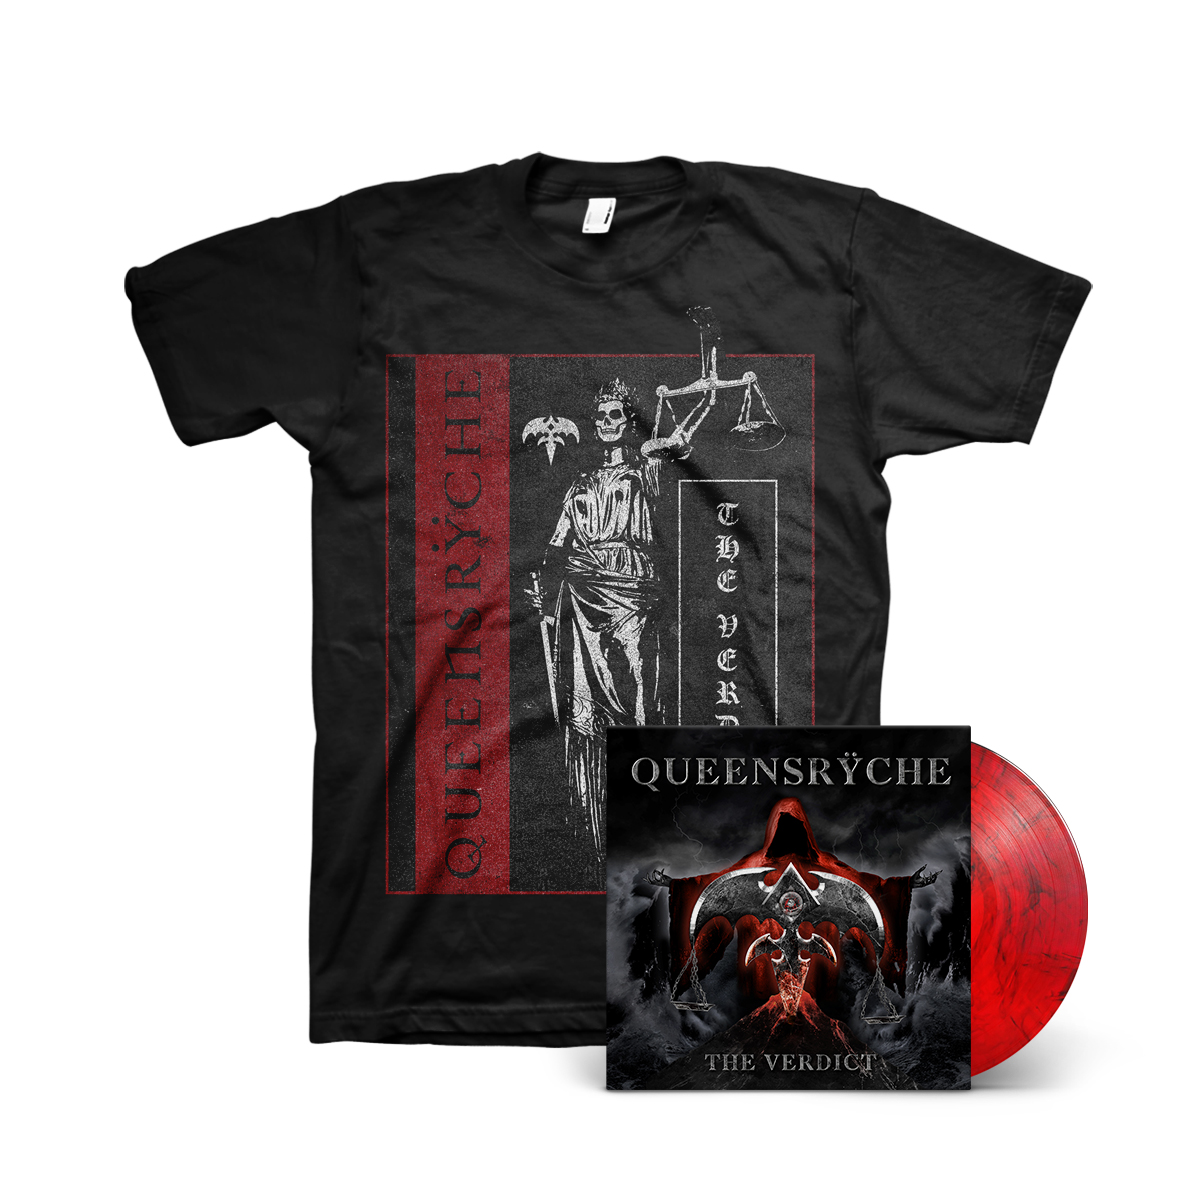 Queensryche - The Verdict Red Smoke LP + Justice T-Shirt